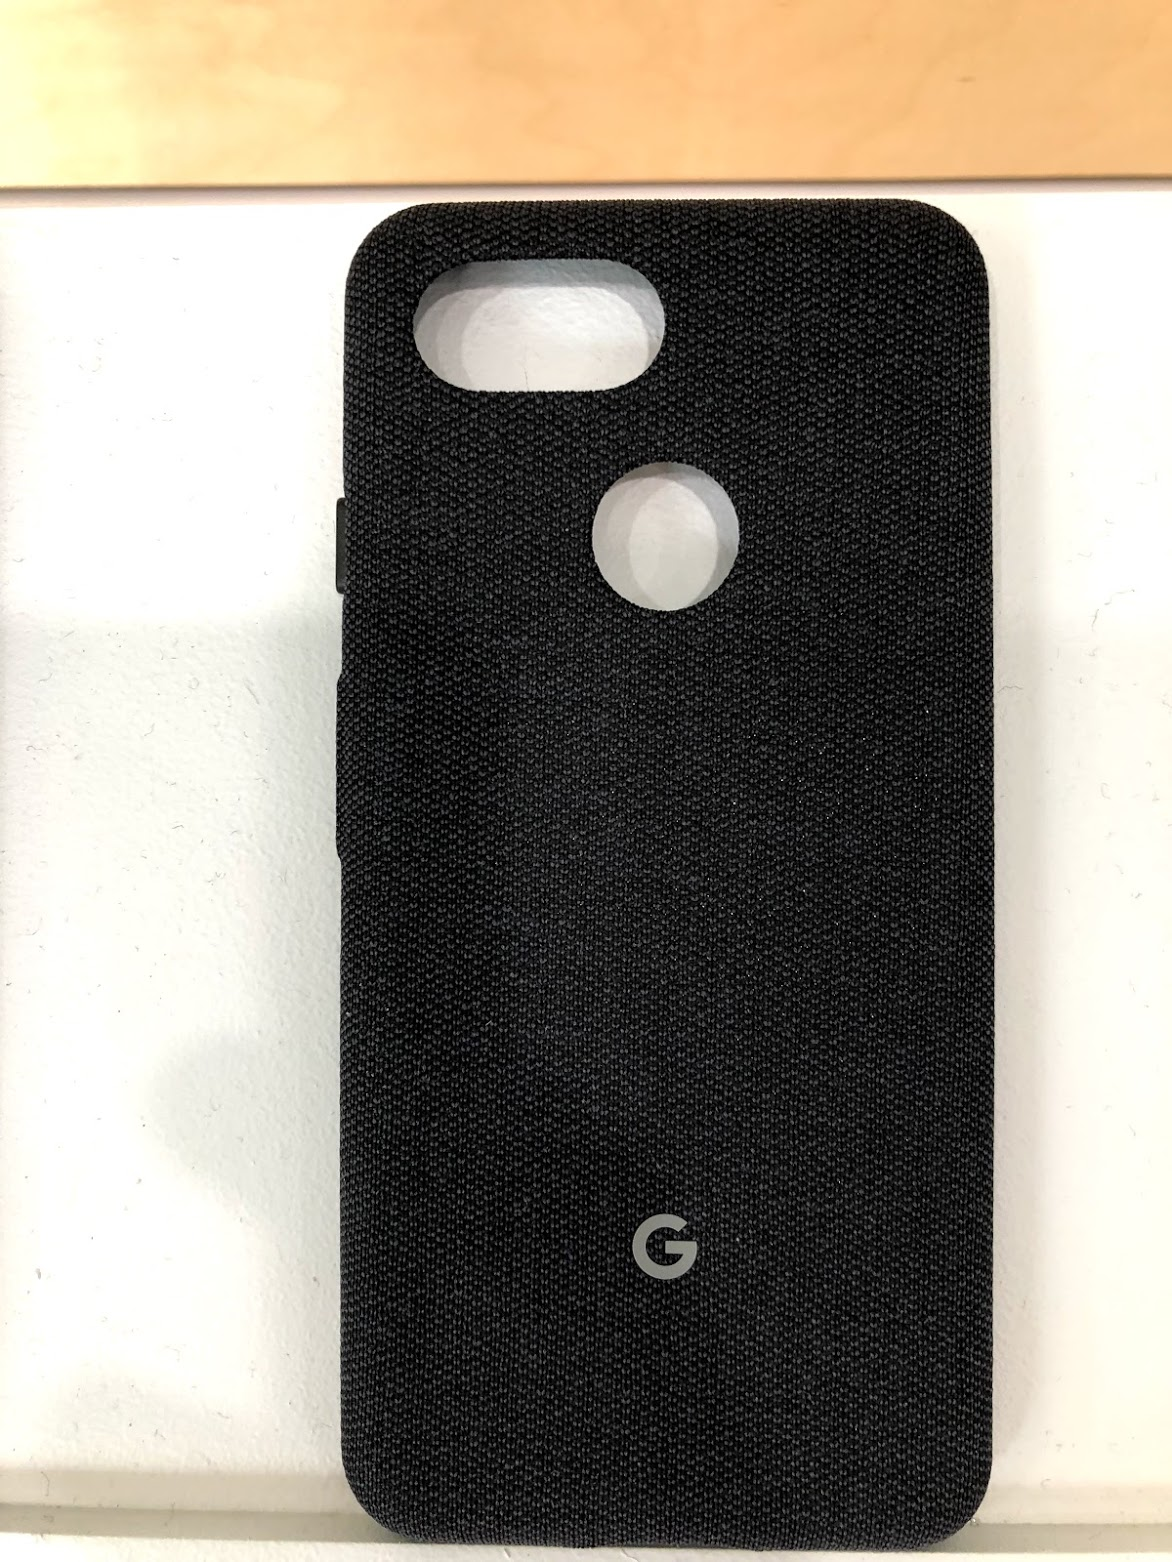 newest 6607a aa38d Hands-on: Every 'Made by Google' fabric case for Pixel 3 and Pixel 3 ...